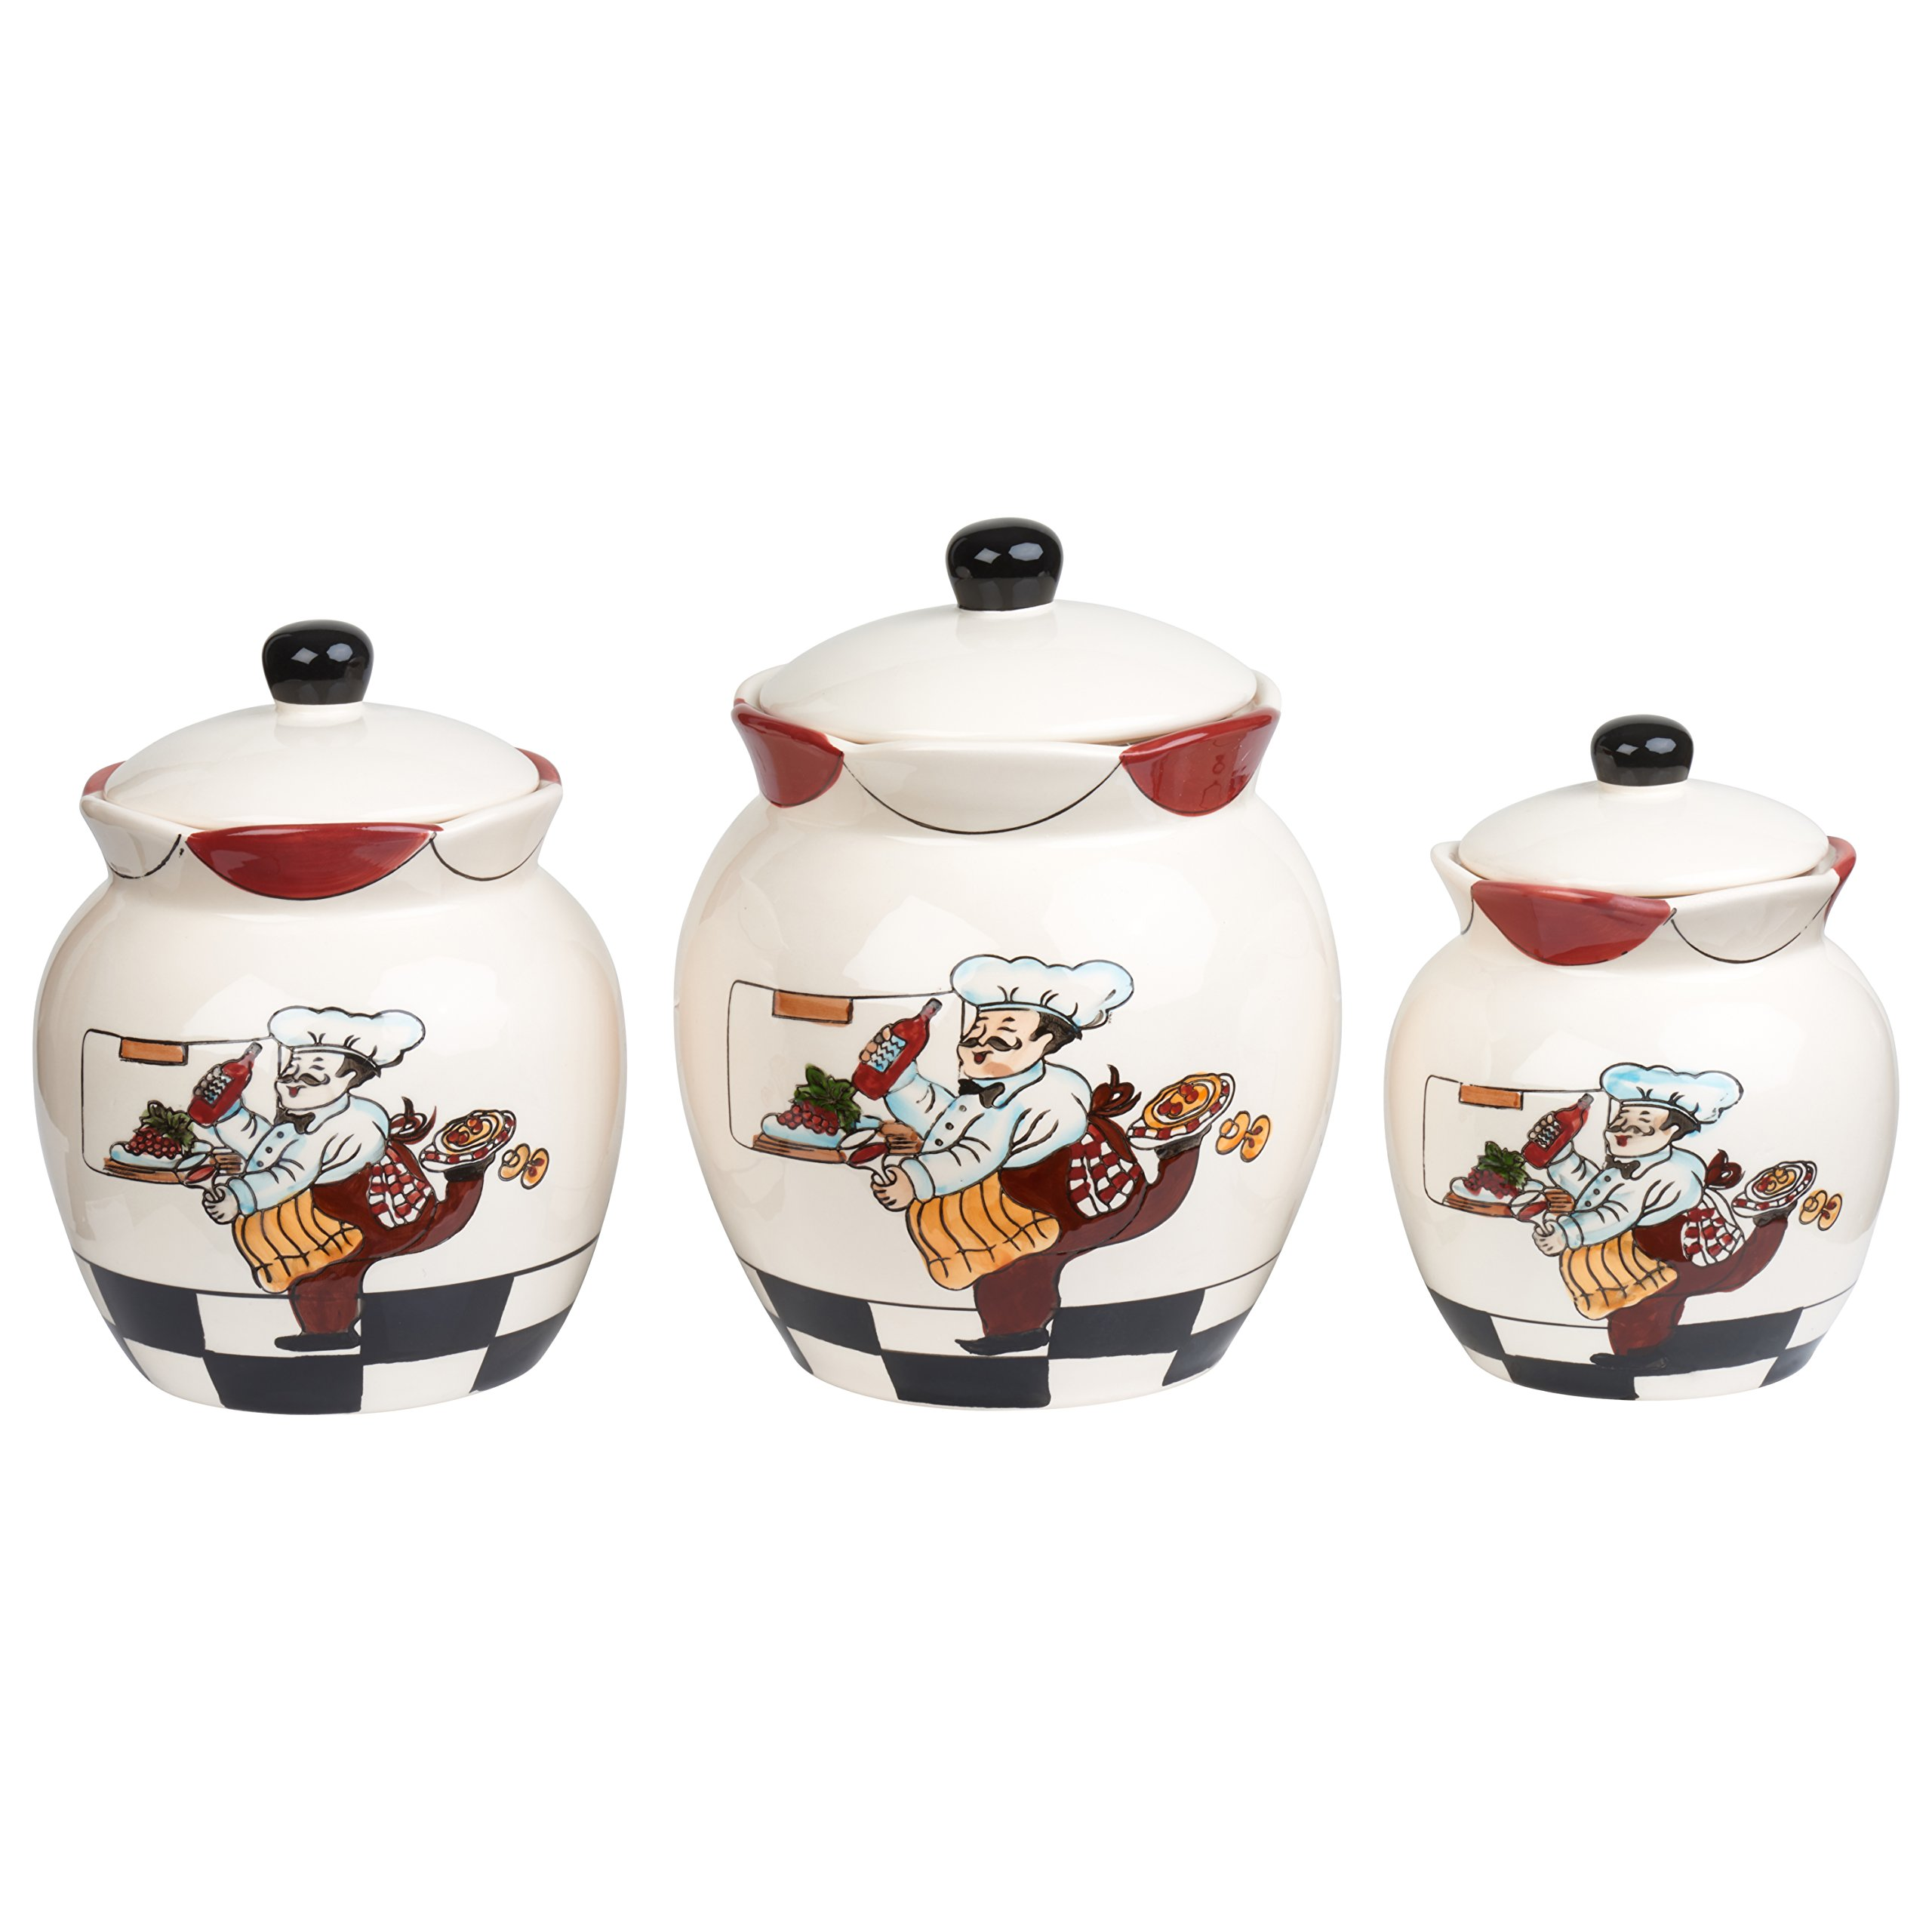 Lorren Home Trends C2069 Canister Set Ceramic 3 Piece Deluxe